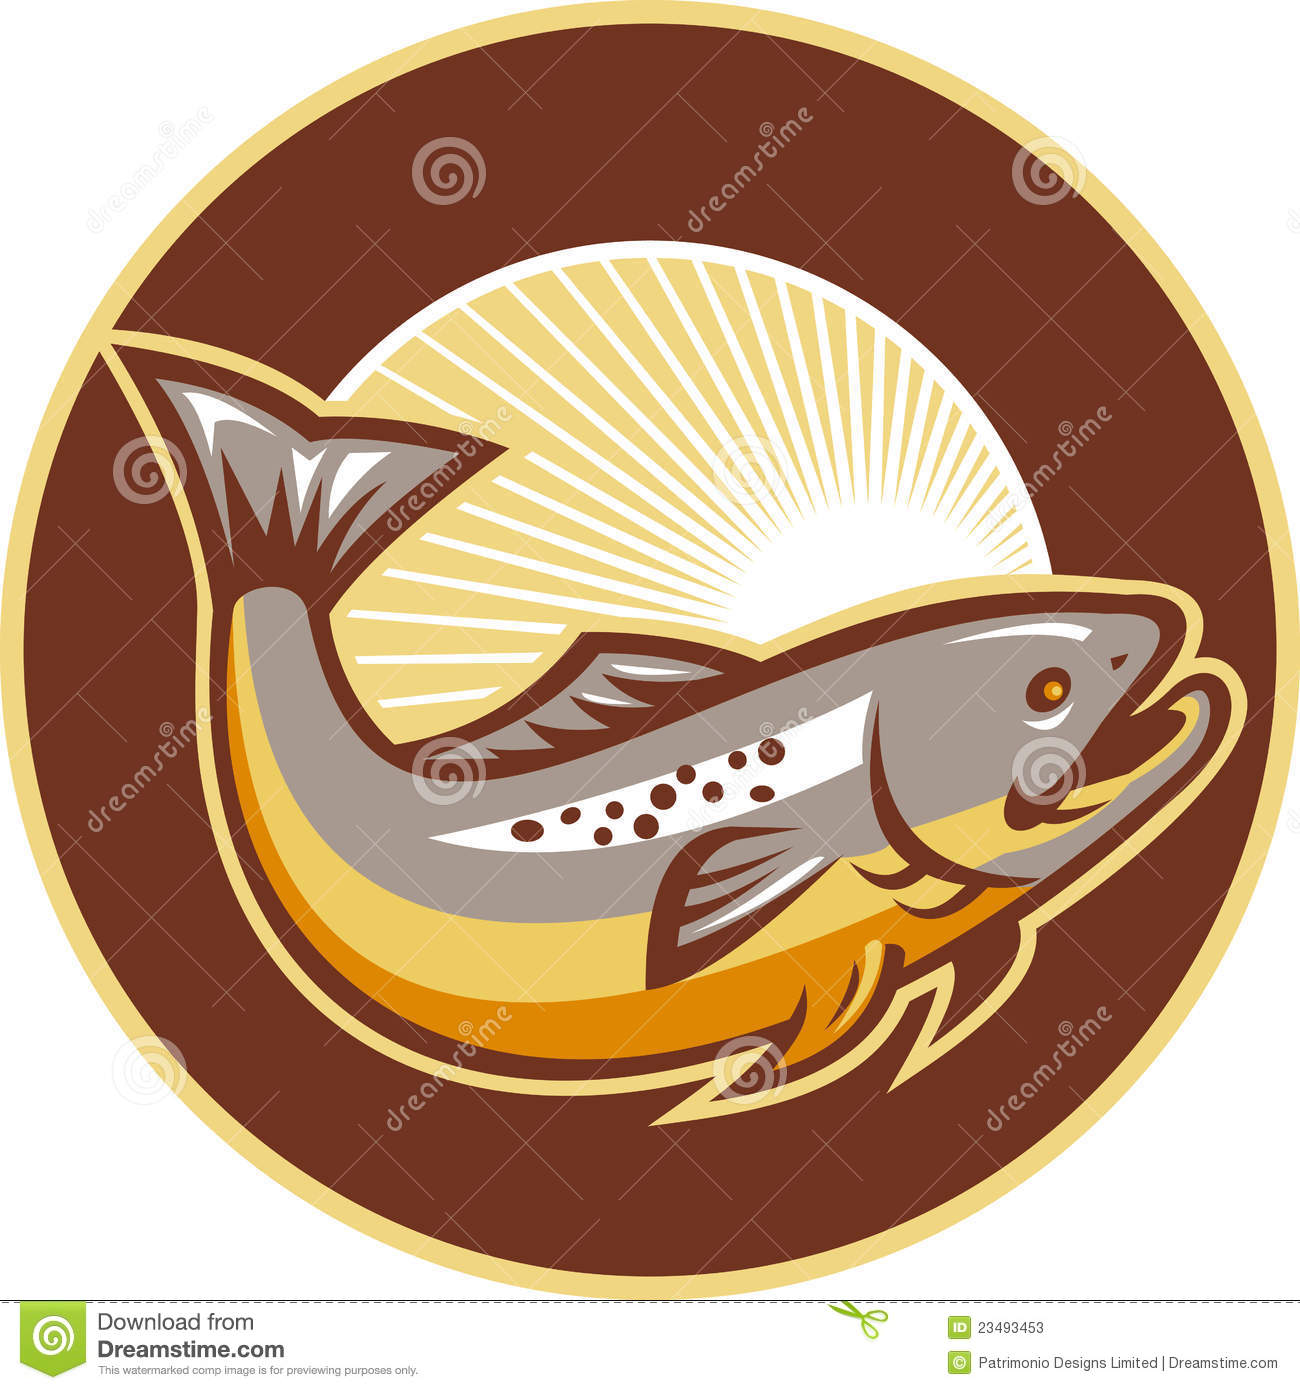 Download Trout Fish Jumping Sunburst Circle Stock Vector - Illustration of freshwater, life: 23493453